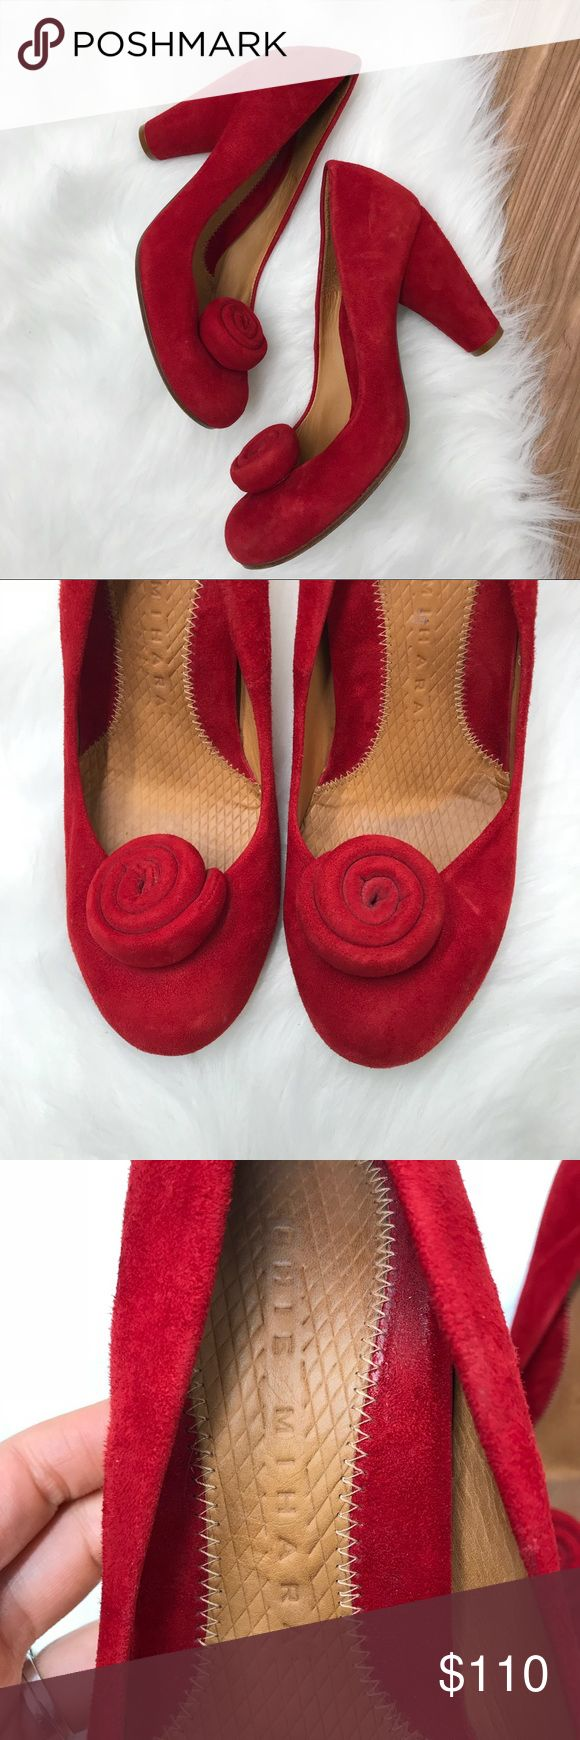 Chie Mihara Red Suede Pumps With Flower Detail 40 Chie Mihara Red Suede Pumps With Flower Detail 40 Shoes are in pre-owned condition (please see all images). They do not have any scuff marks on the heel or the toes.  Light wear on sole from use.  Made in spain. Offers welcomed. Anthropologie Shoes Heels